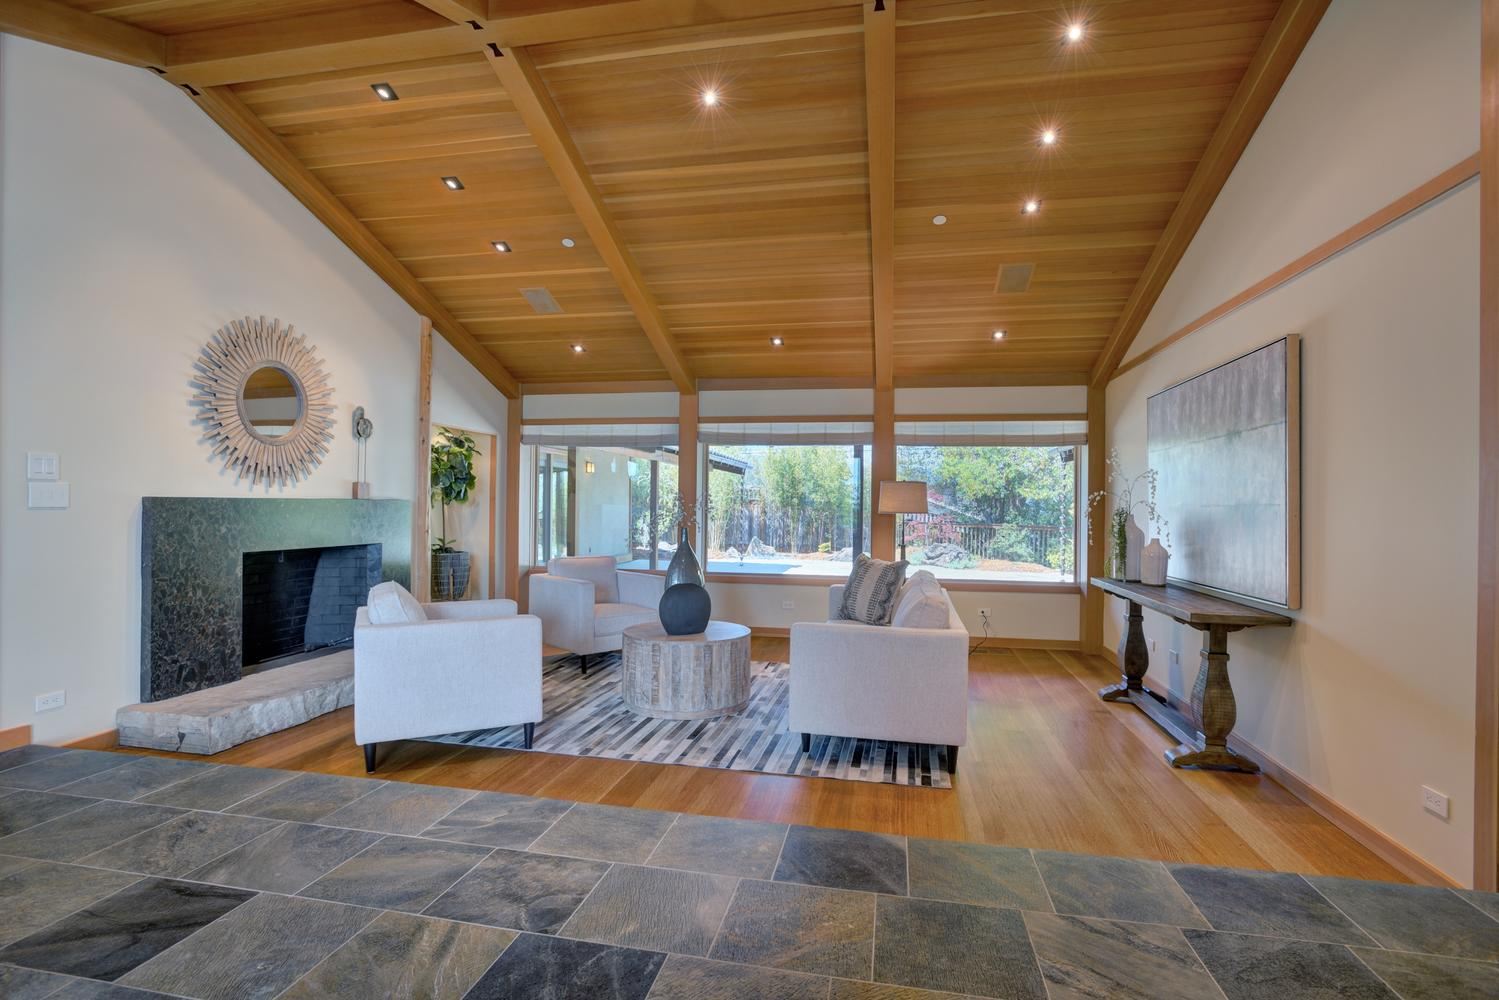 573 More Ave Los Gatos CA-large-005-25-Living Room-1499x1000-72dpi.jpg